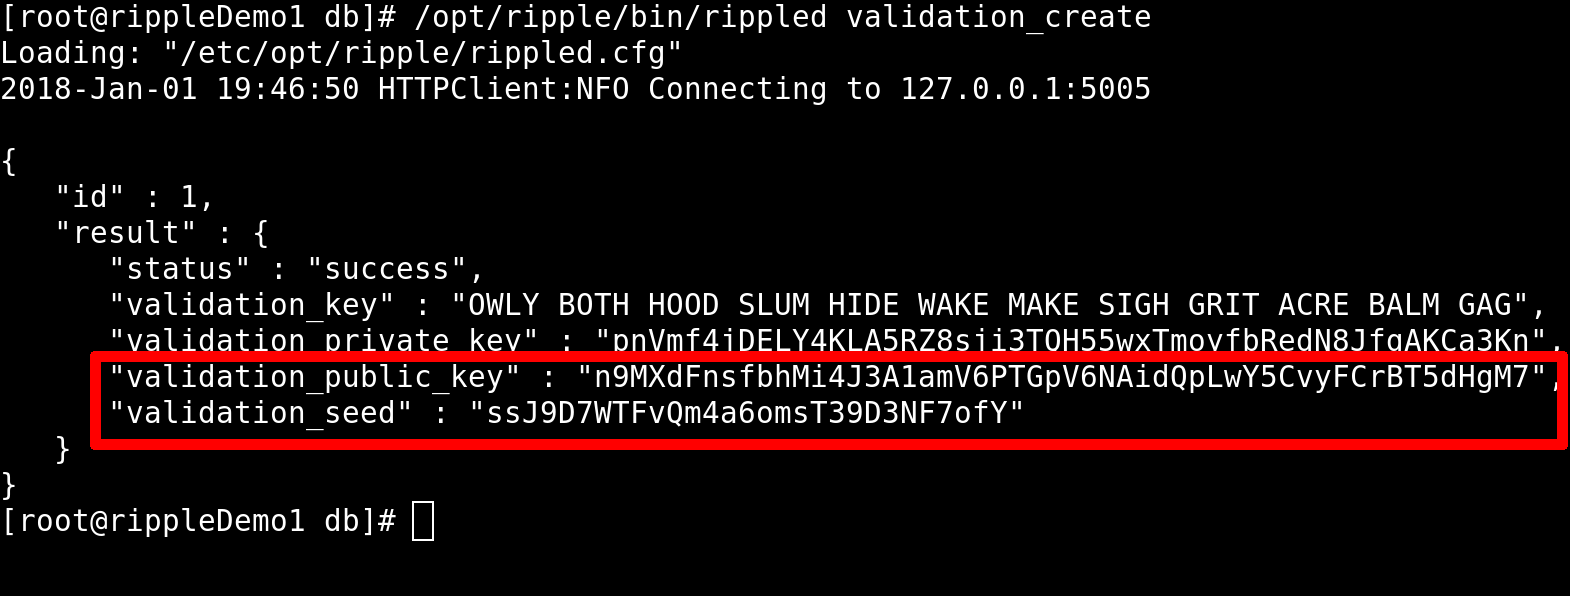 Output from the validation_create command.